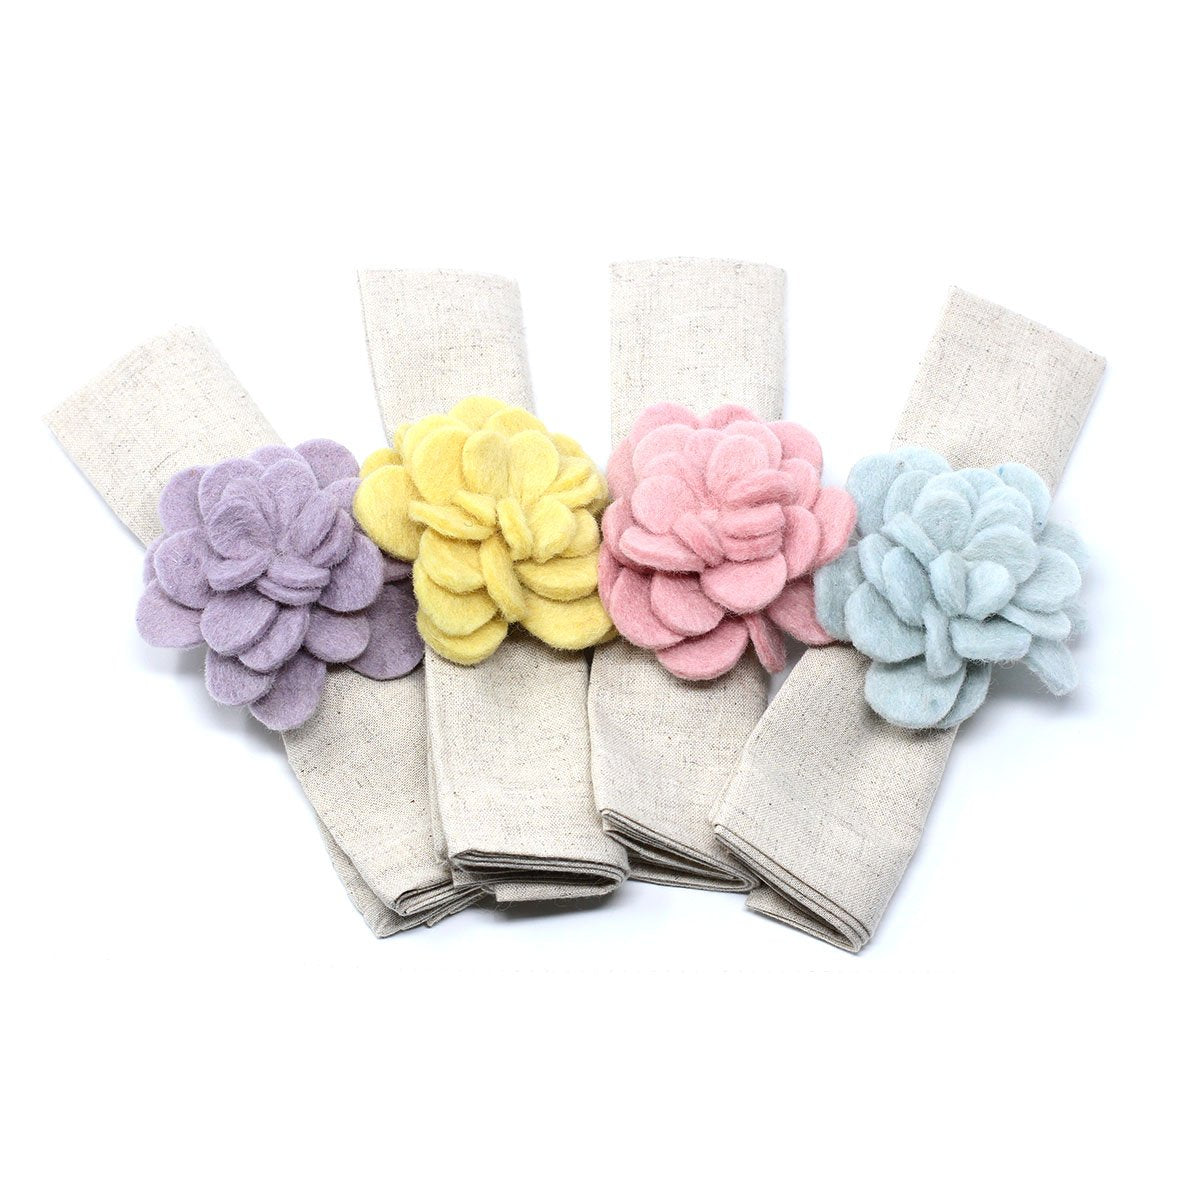 Hand-felted Zinnia Napkin Rings ● Set of Four Colors ● Global Groove - Mandala Sol